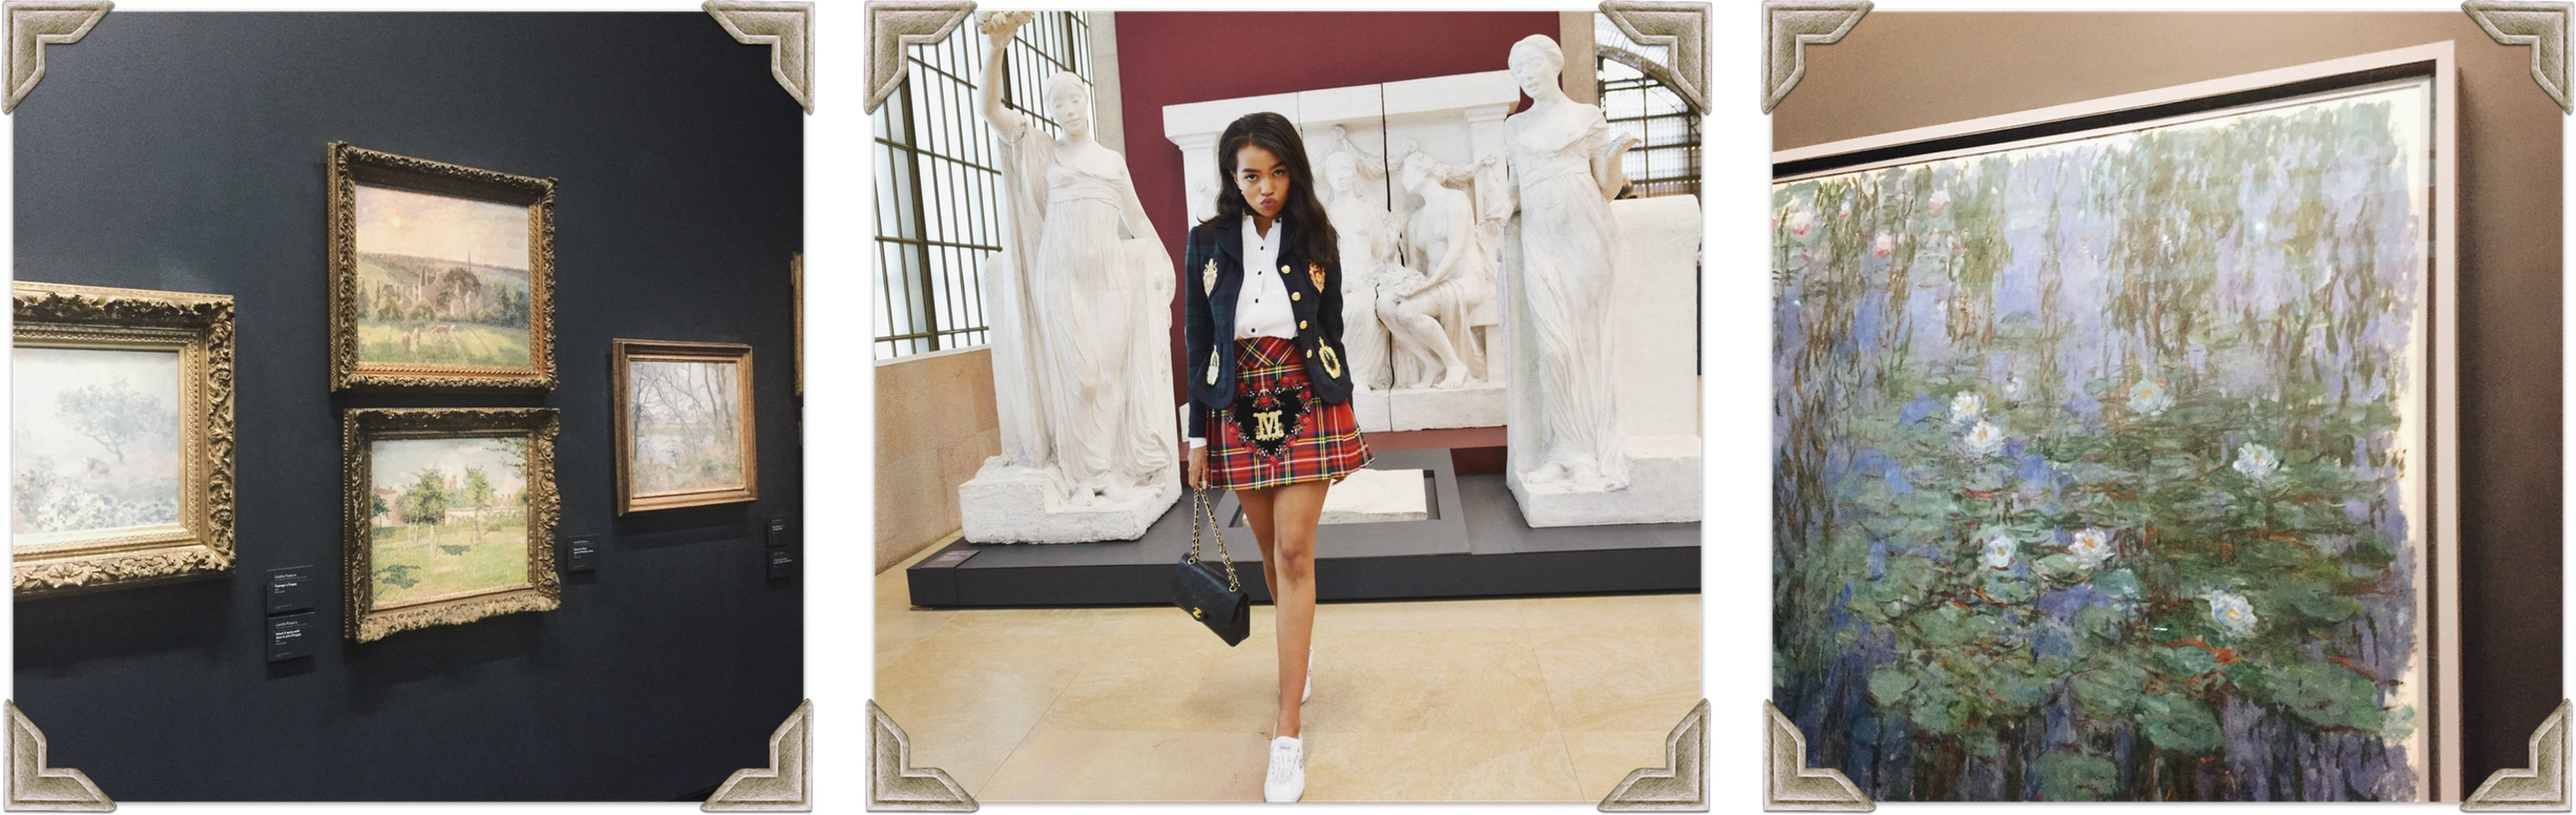 Musee d'orsay Paris // Moschino A/W 13 // Paris Travel Diary // Moschino Plaid Blazer Jacket & Pleated Skirt // Frame White Blouse // Feiyue Sneakers // Chanel Classic Flap Bag & CC Earrings // Los Angeles Fashion Blogger Daphne Blunt: To Style, With Love